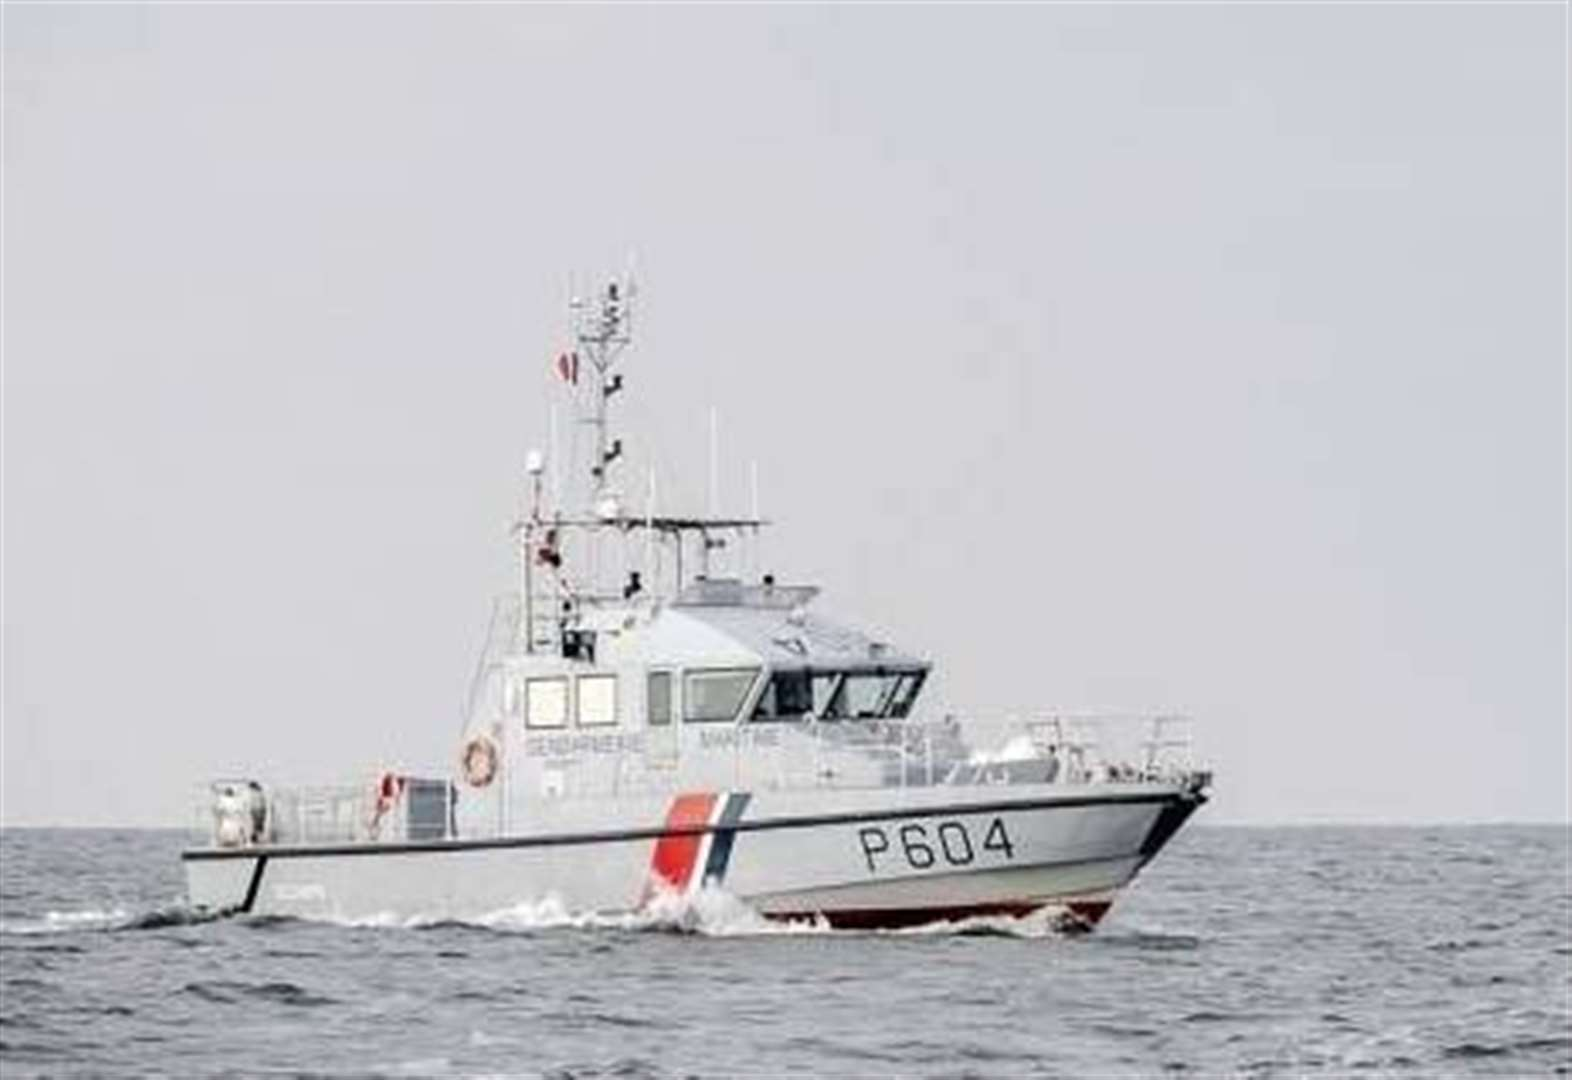 Migrants saved from sinking boat